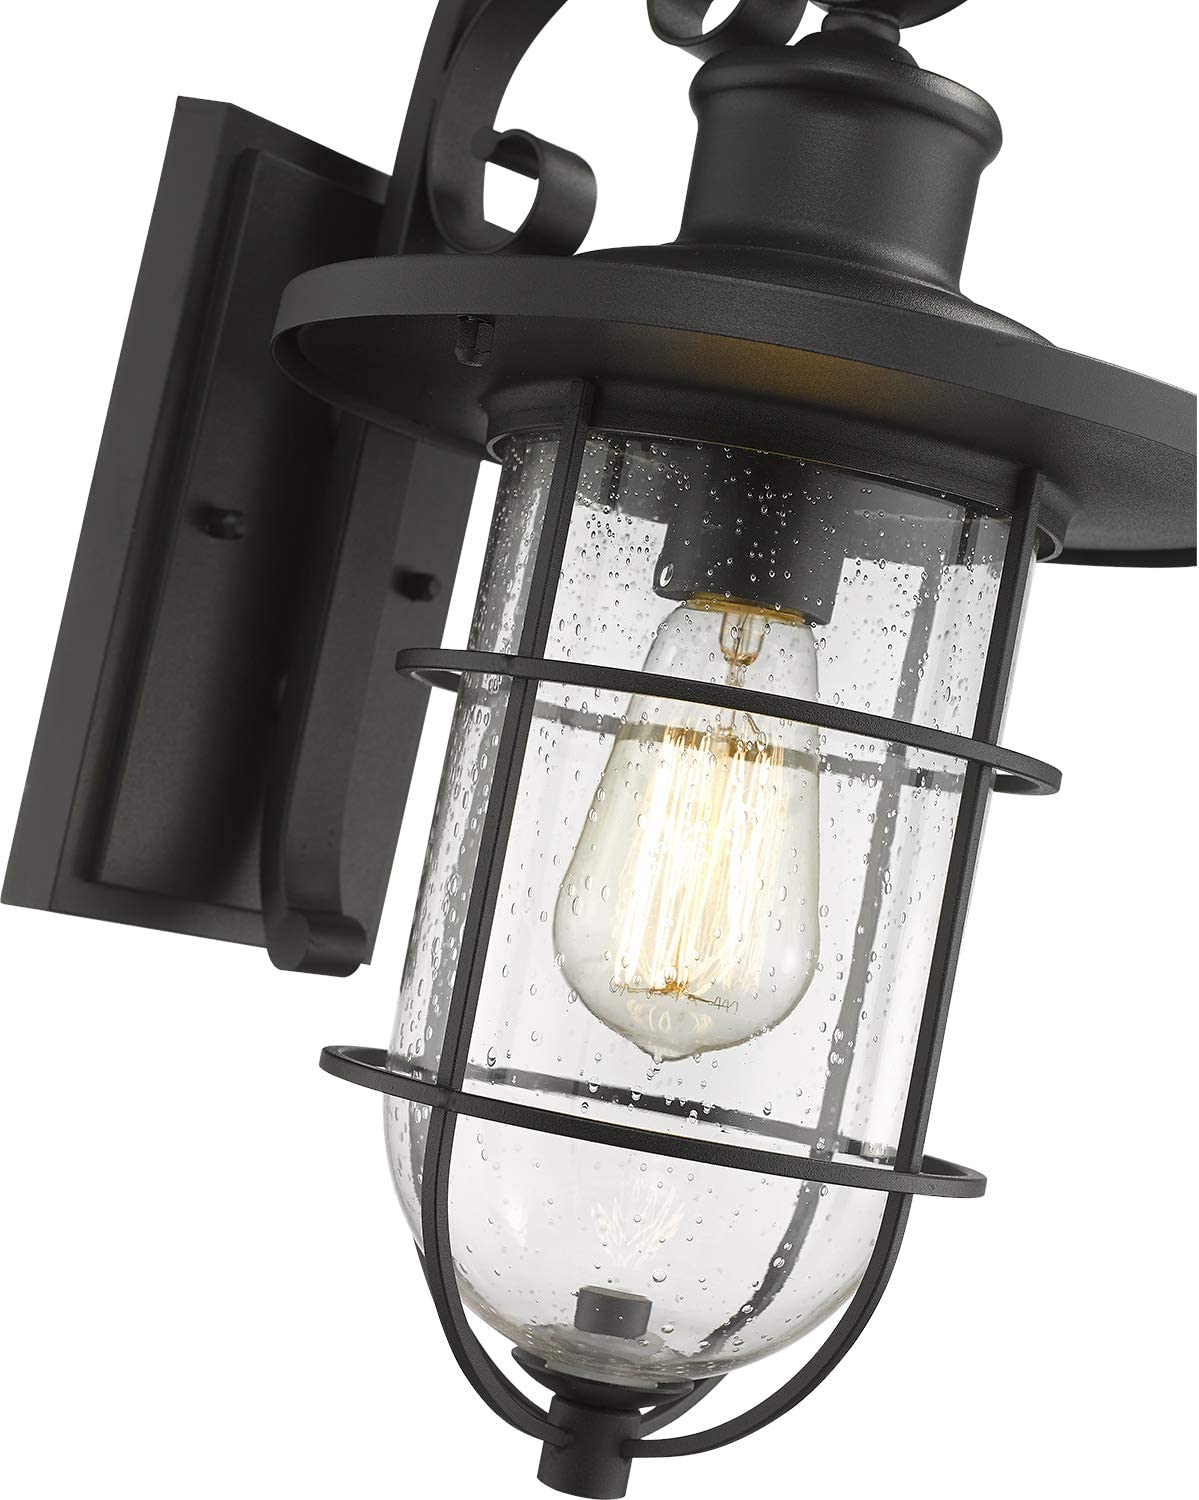 Emliviar Outdoor Wall Sconce 17 Inch Outdoor Wall Light For House Black Finish With Seeded Glass Ye191010w Bk